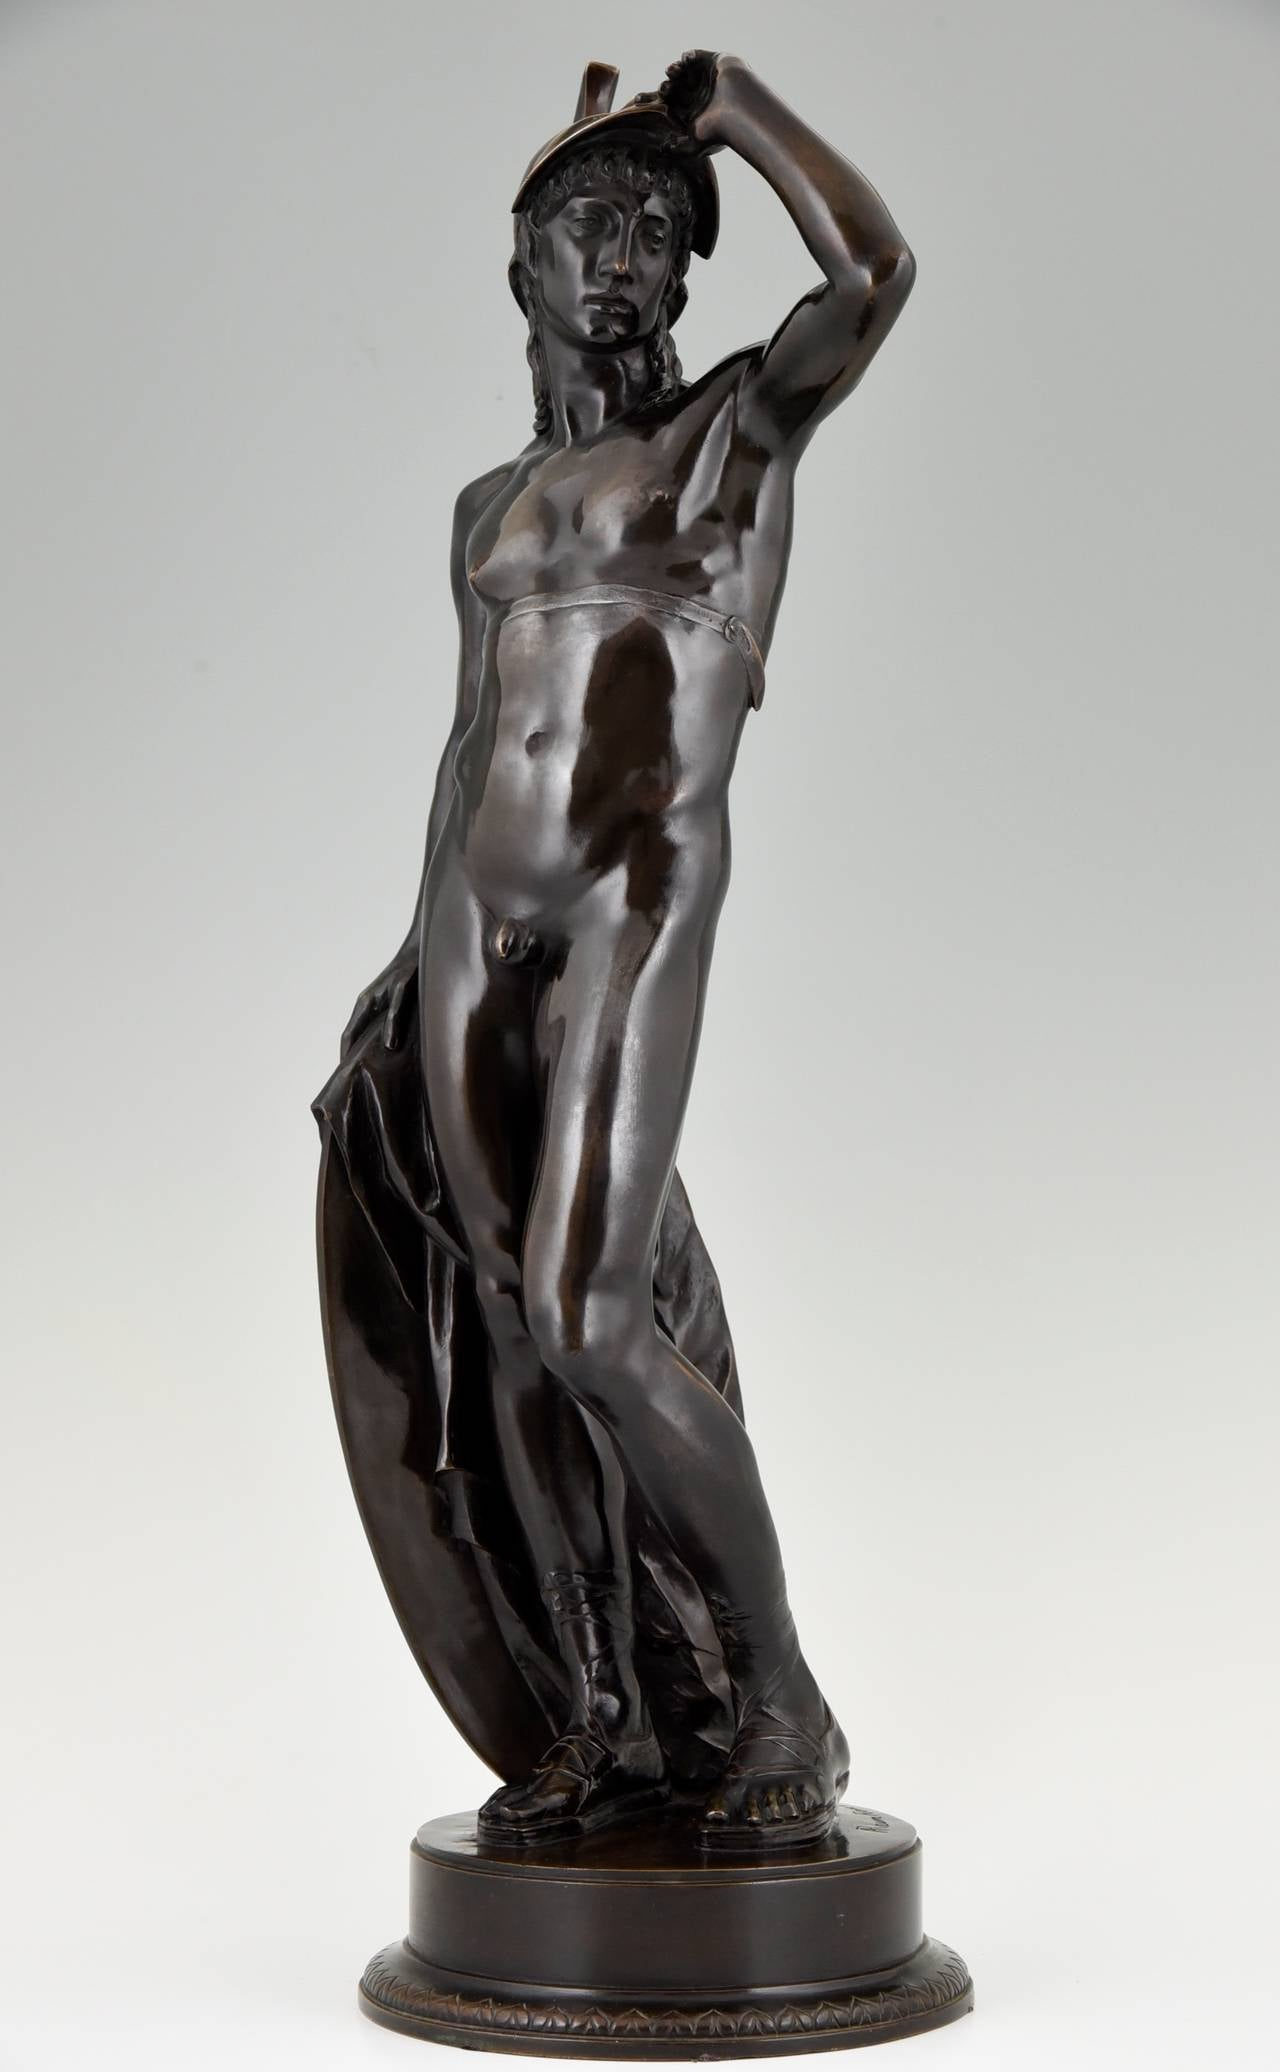 German Antique Bronze Sculpture of a Male Nude by Alfred Raum, Rome, 1903 For Sale